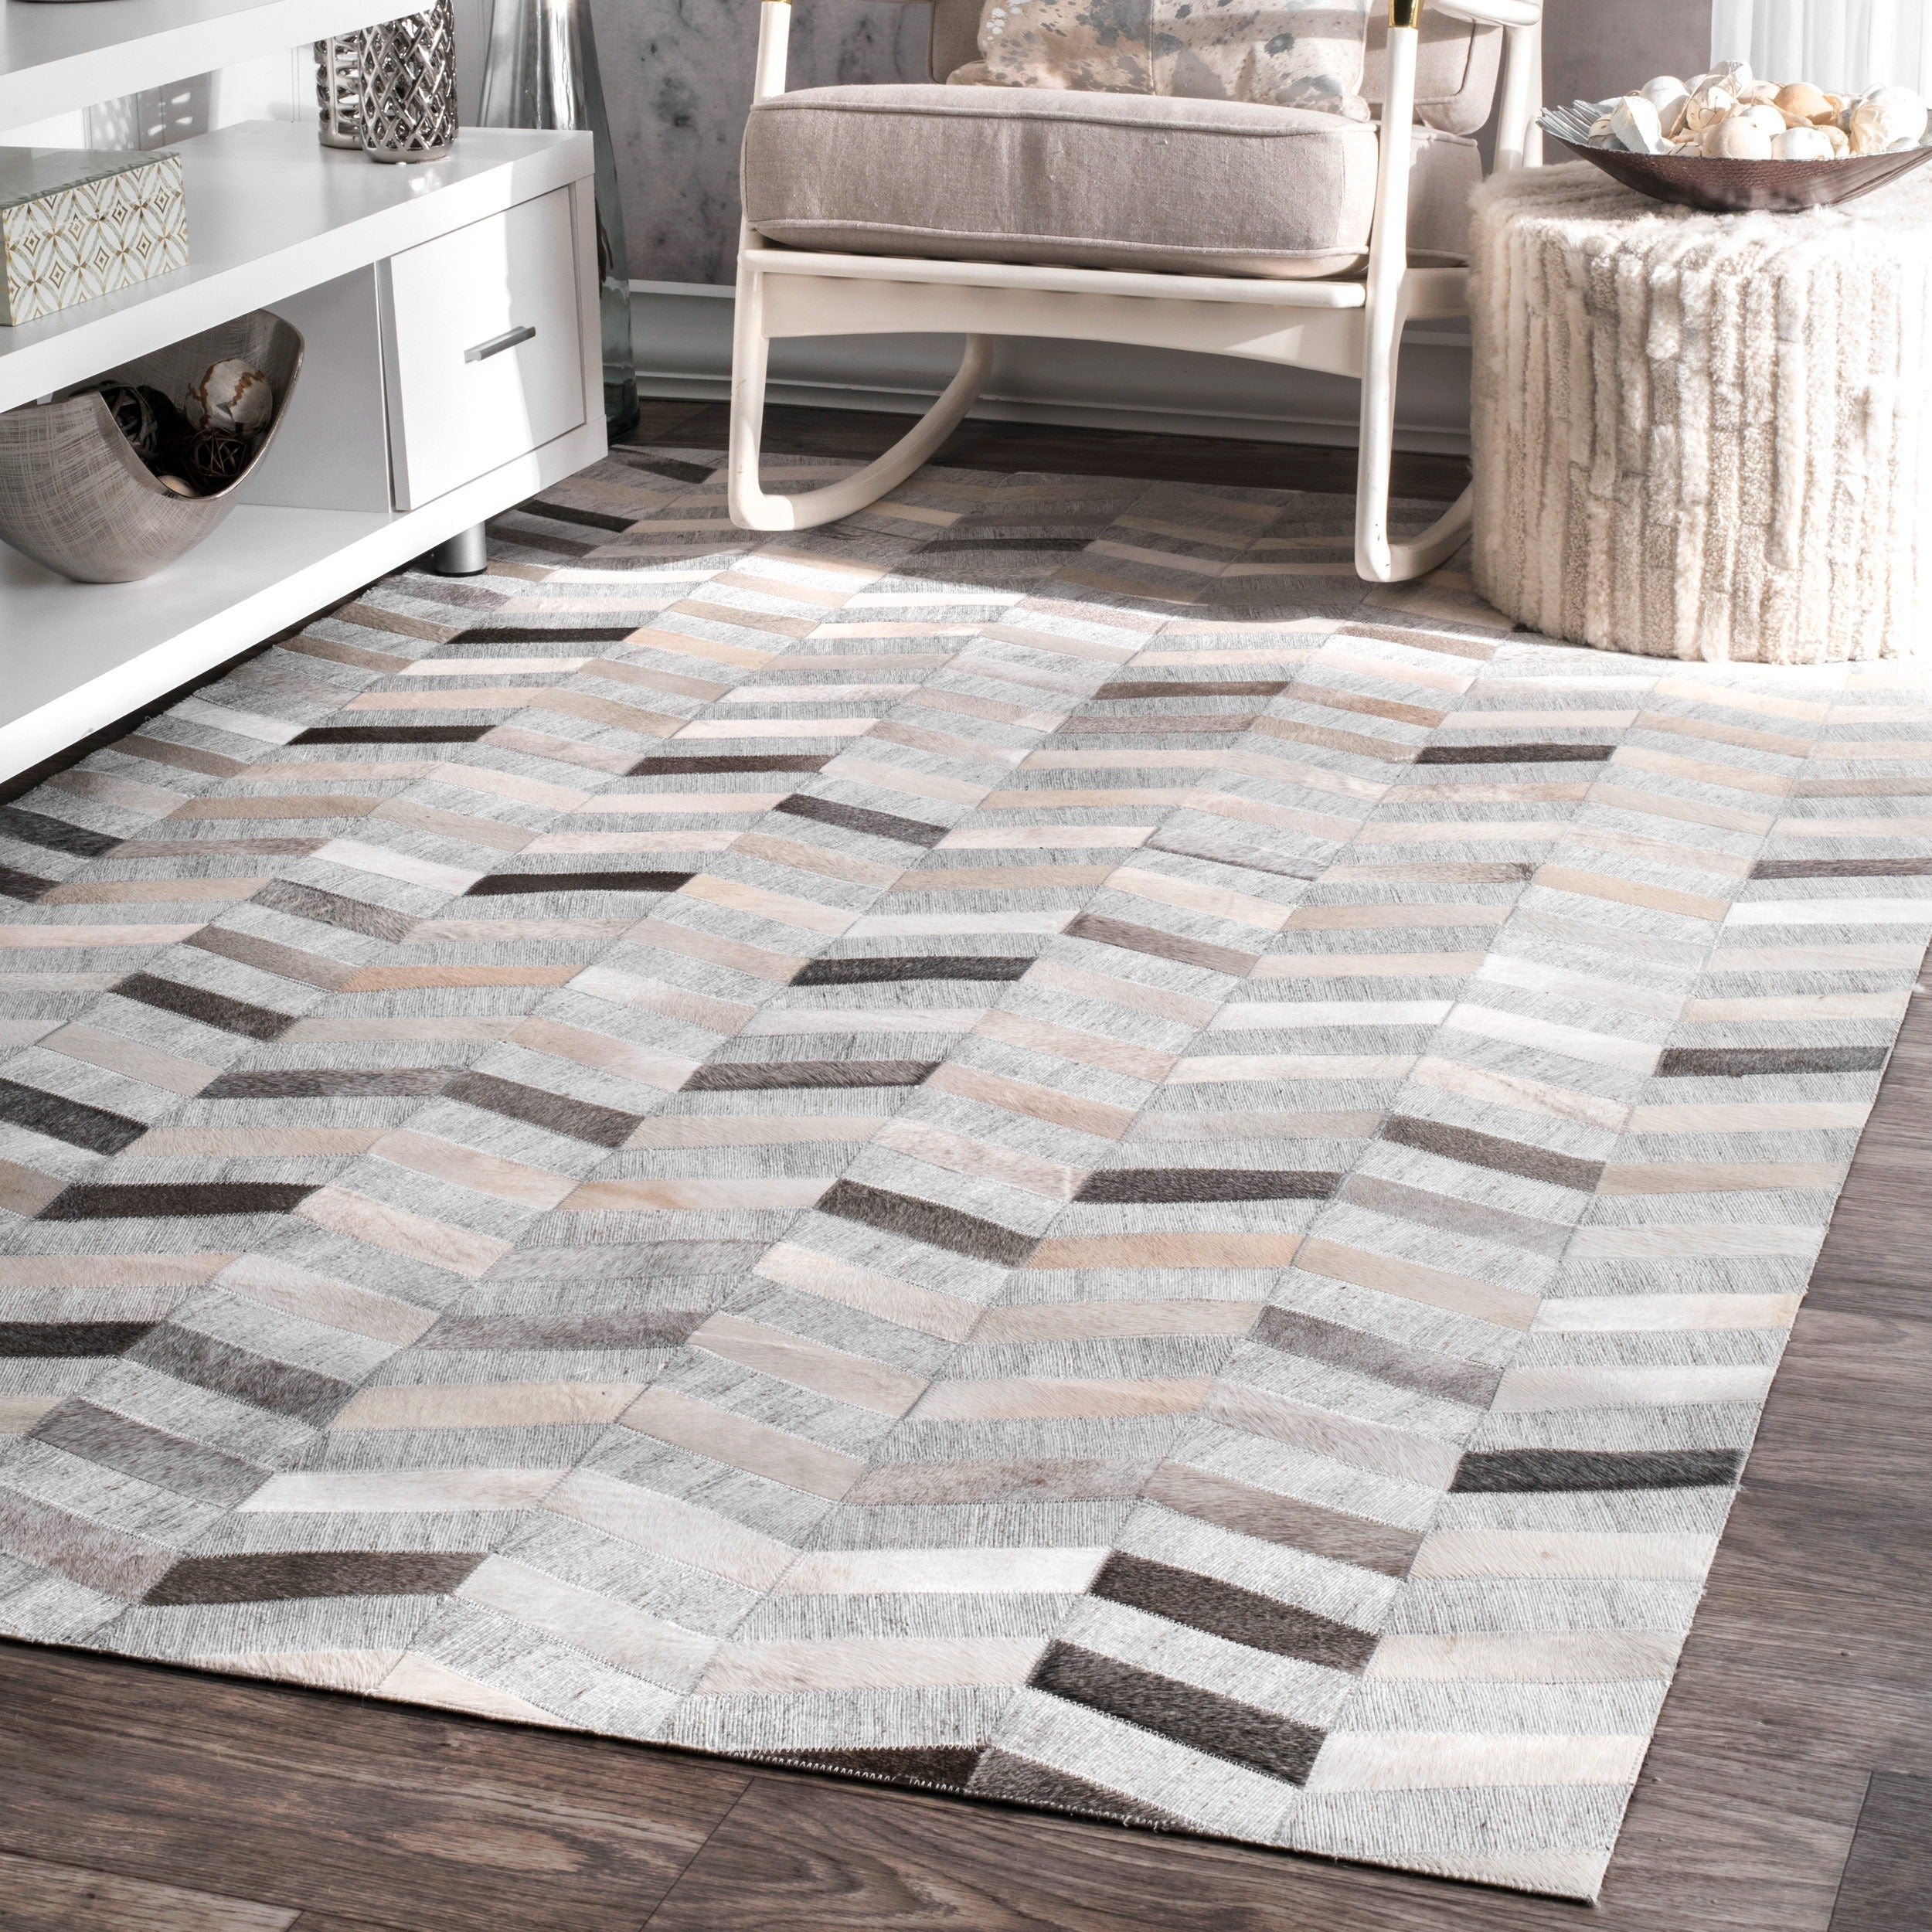 Nuloom Handmade Patchwork Herringbone Leather Viscose Area Rug 5 X27